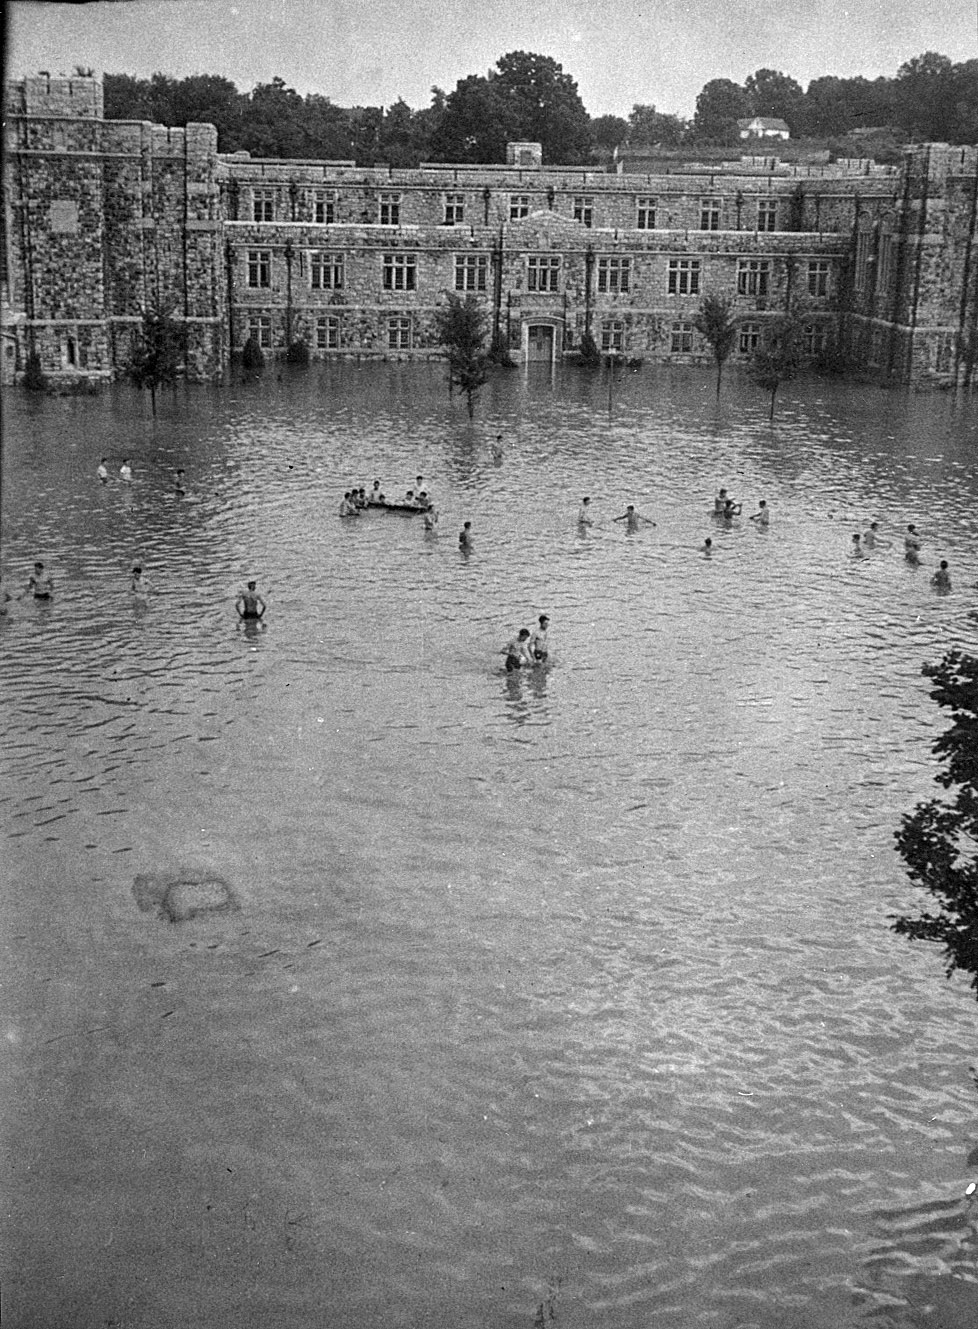 Flooded Eggleston Quad with shirtless students wading and boating in the flood waters.